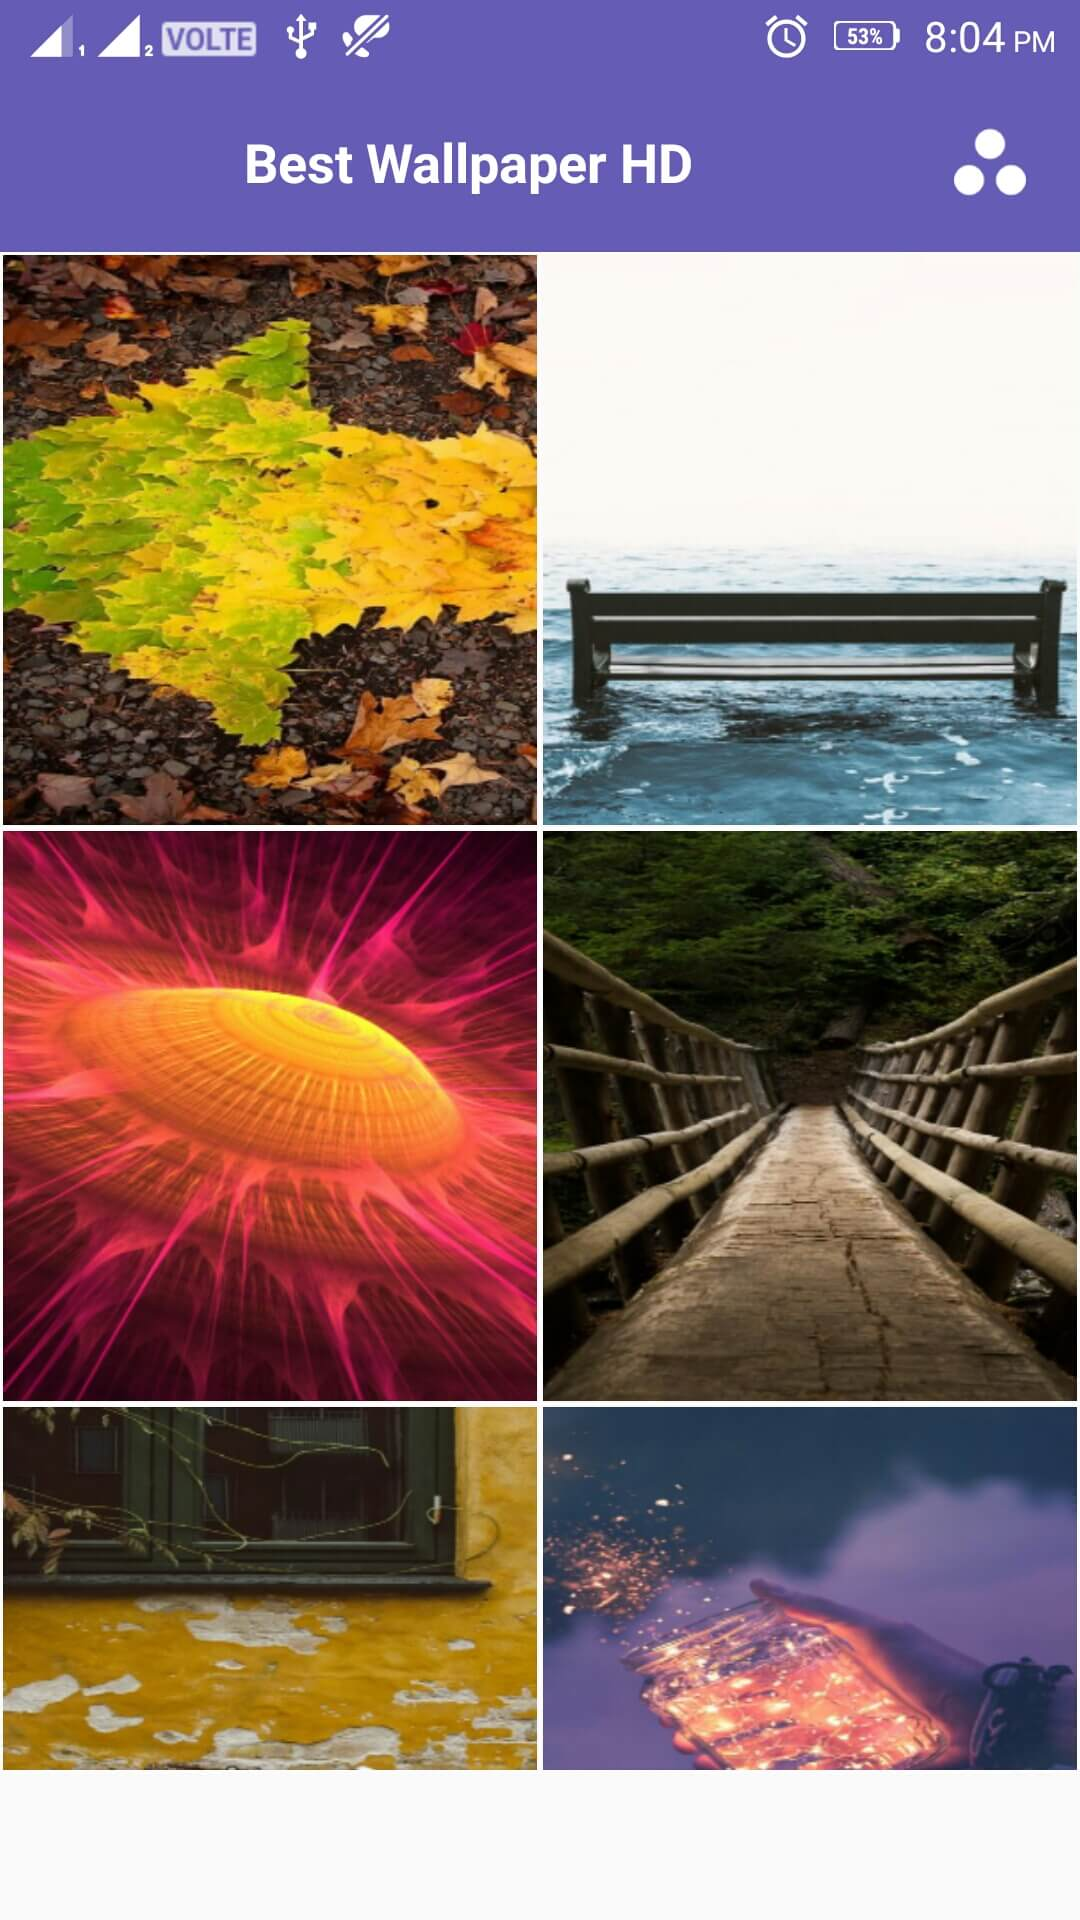 Amazon.com: Best 4K Wallpaper: Appstore for Android